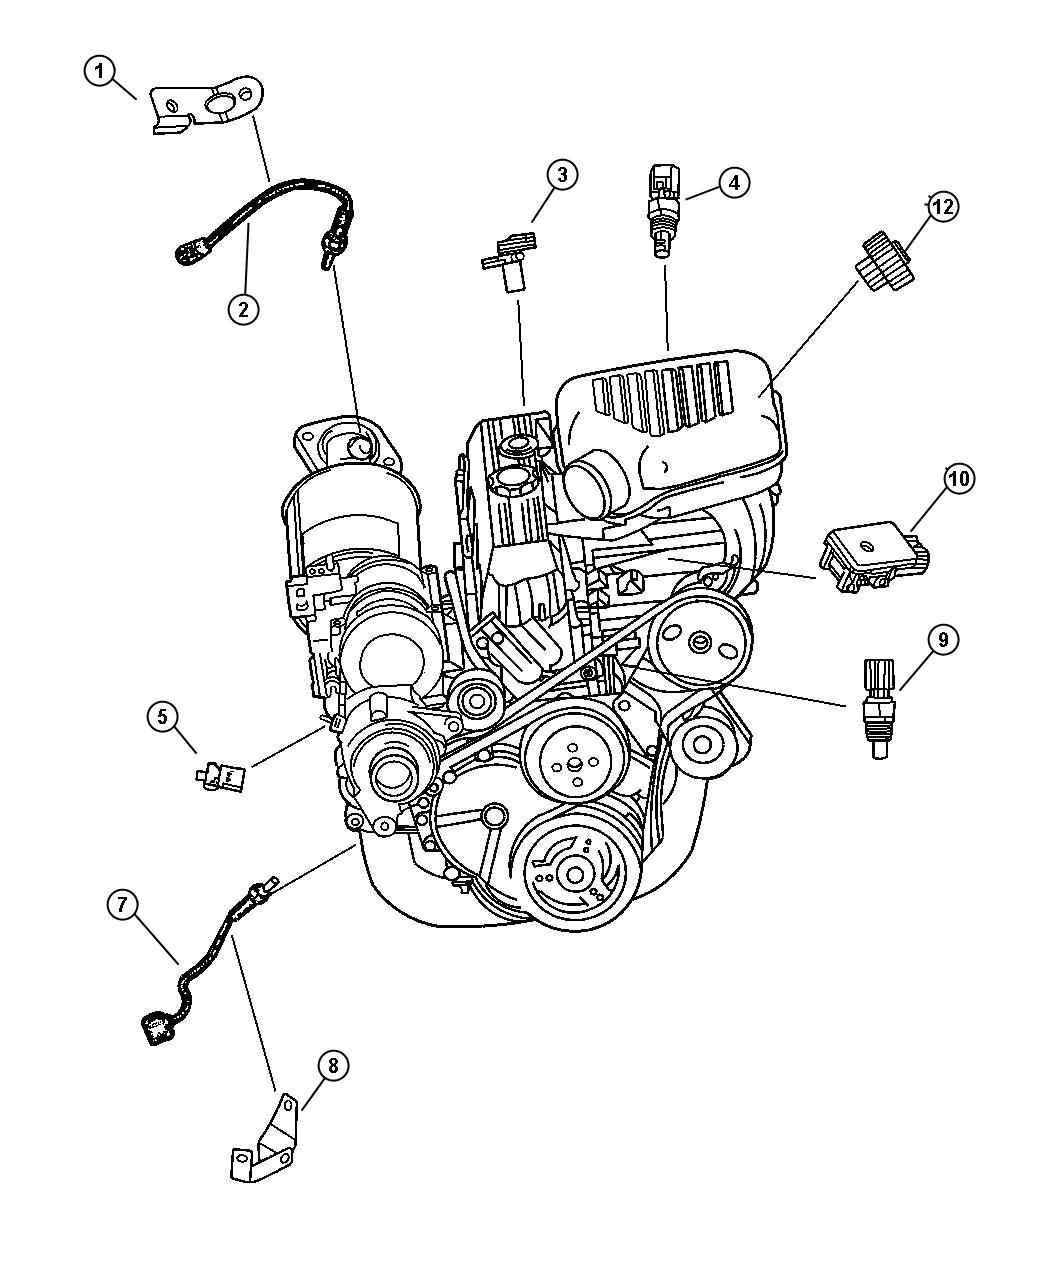 Jeep Wrangler Connector Emission Hose Formed